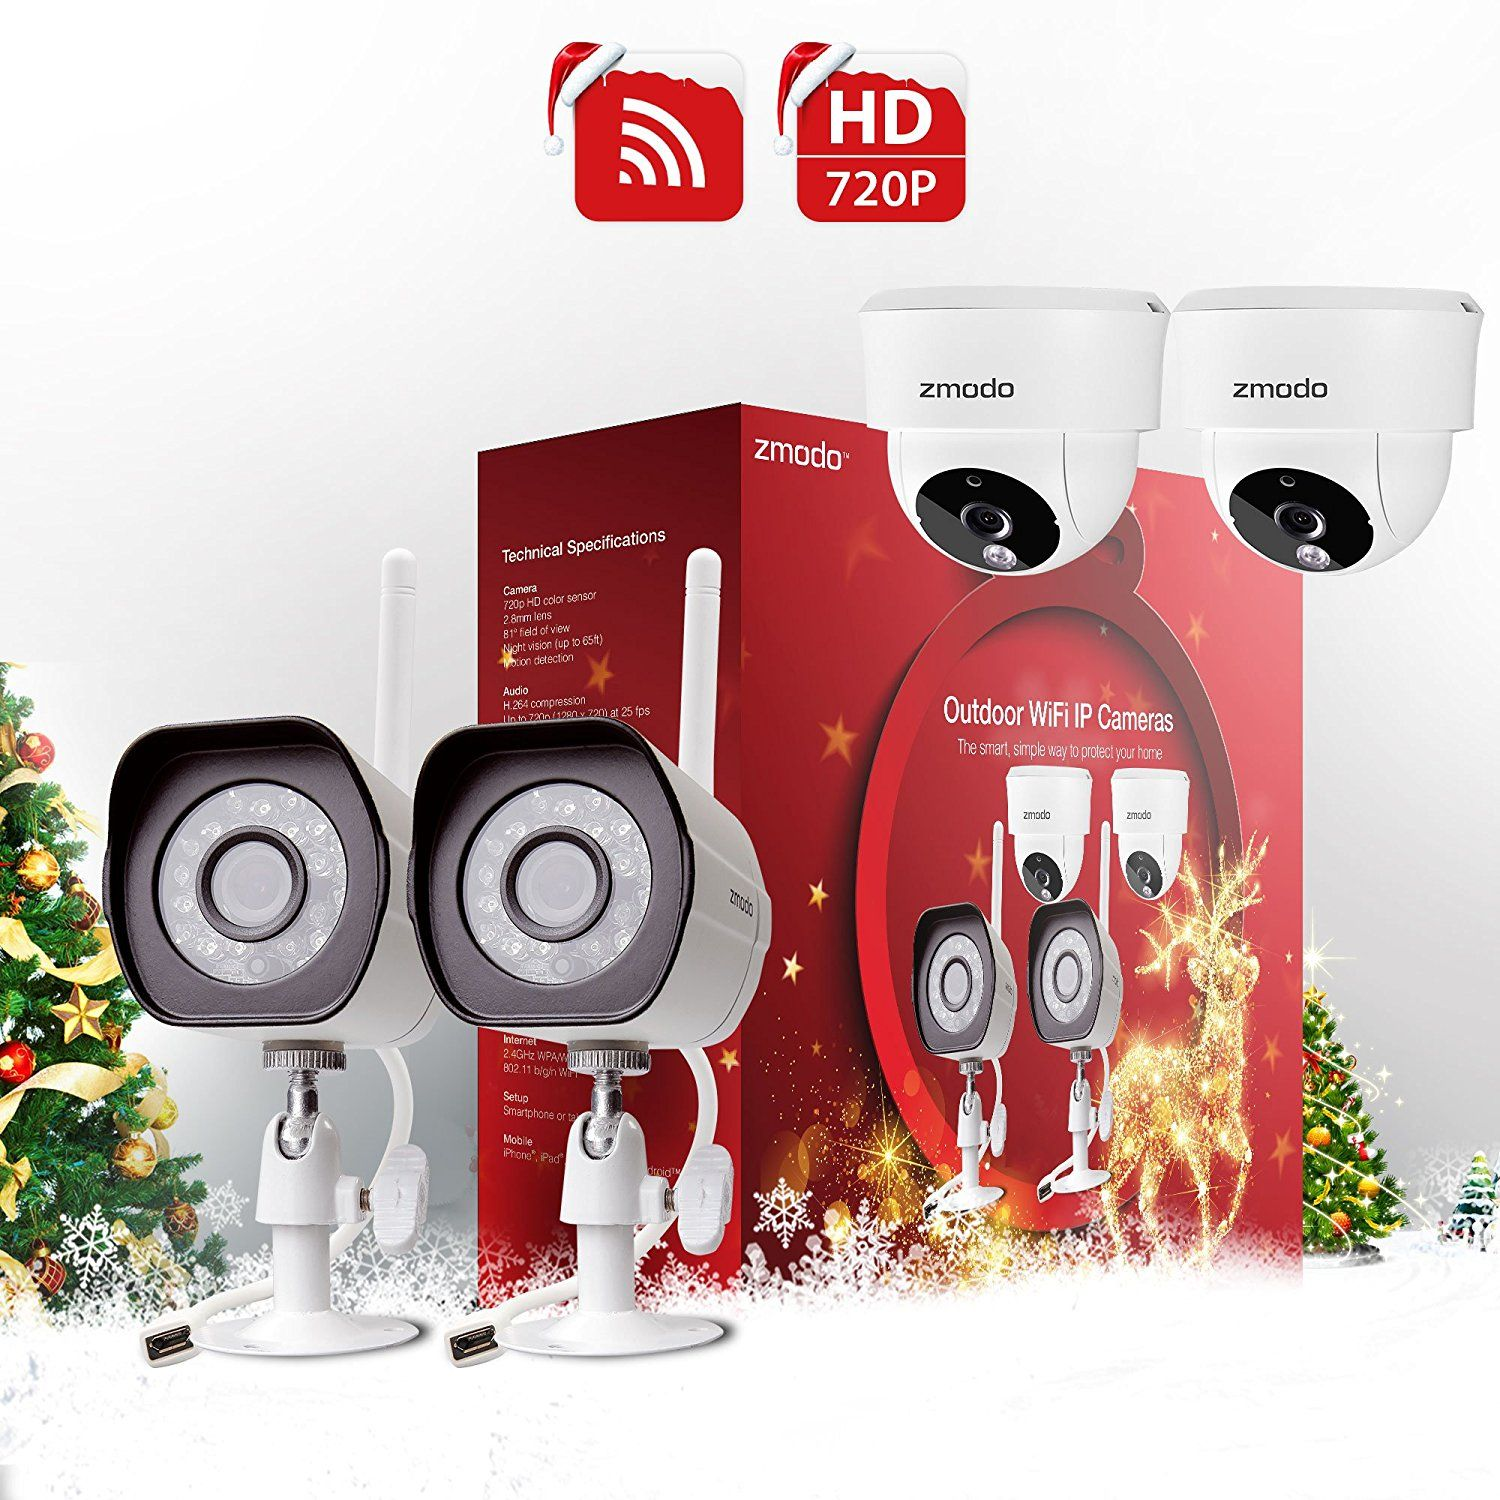 Zmodo hd wireless night vision home video security camera system 2 zmodo hd wireless night vision home video security camera system 2 outdoor 2 indoor diy kit holiday present wrap special product just for you solutioingenieria Gallery